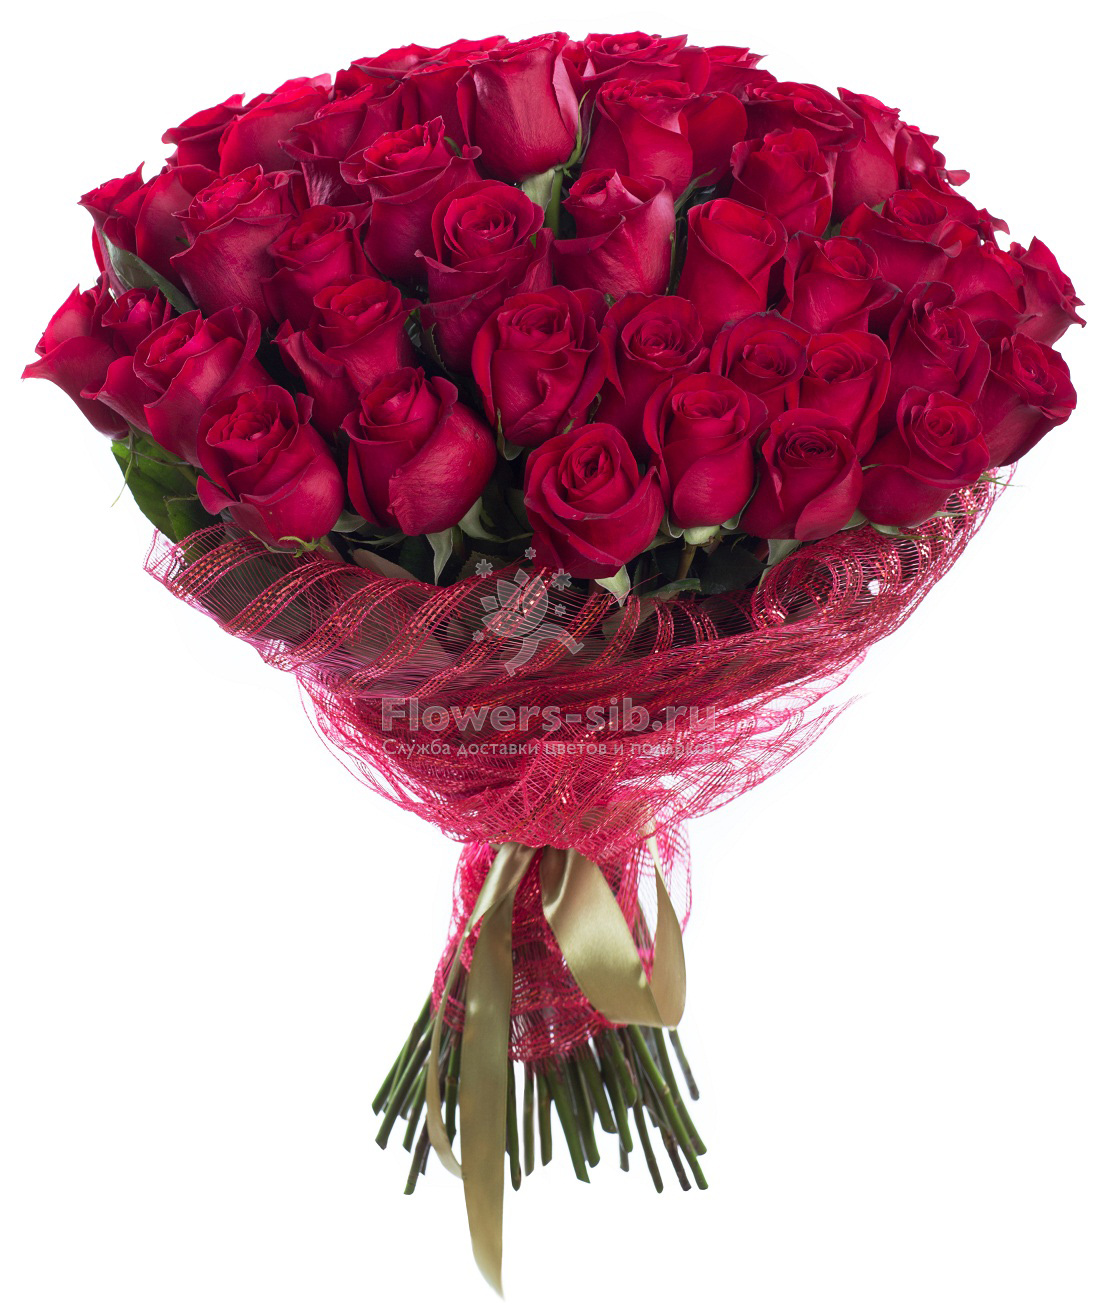 BOUQUET OF 47 ROSES at the price 5080 - fast delivery of bouquets ...